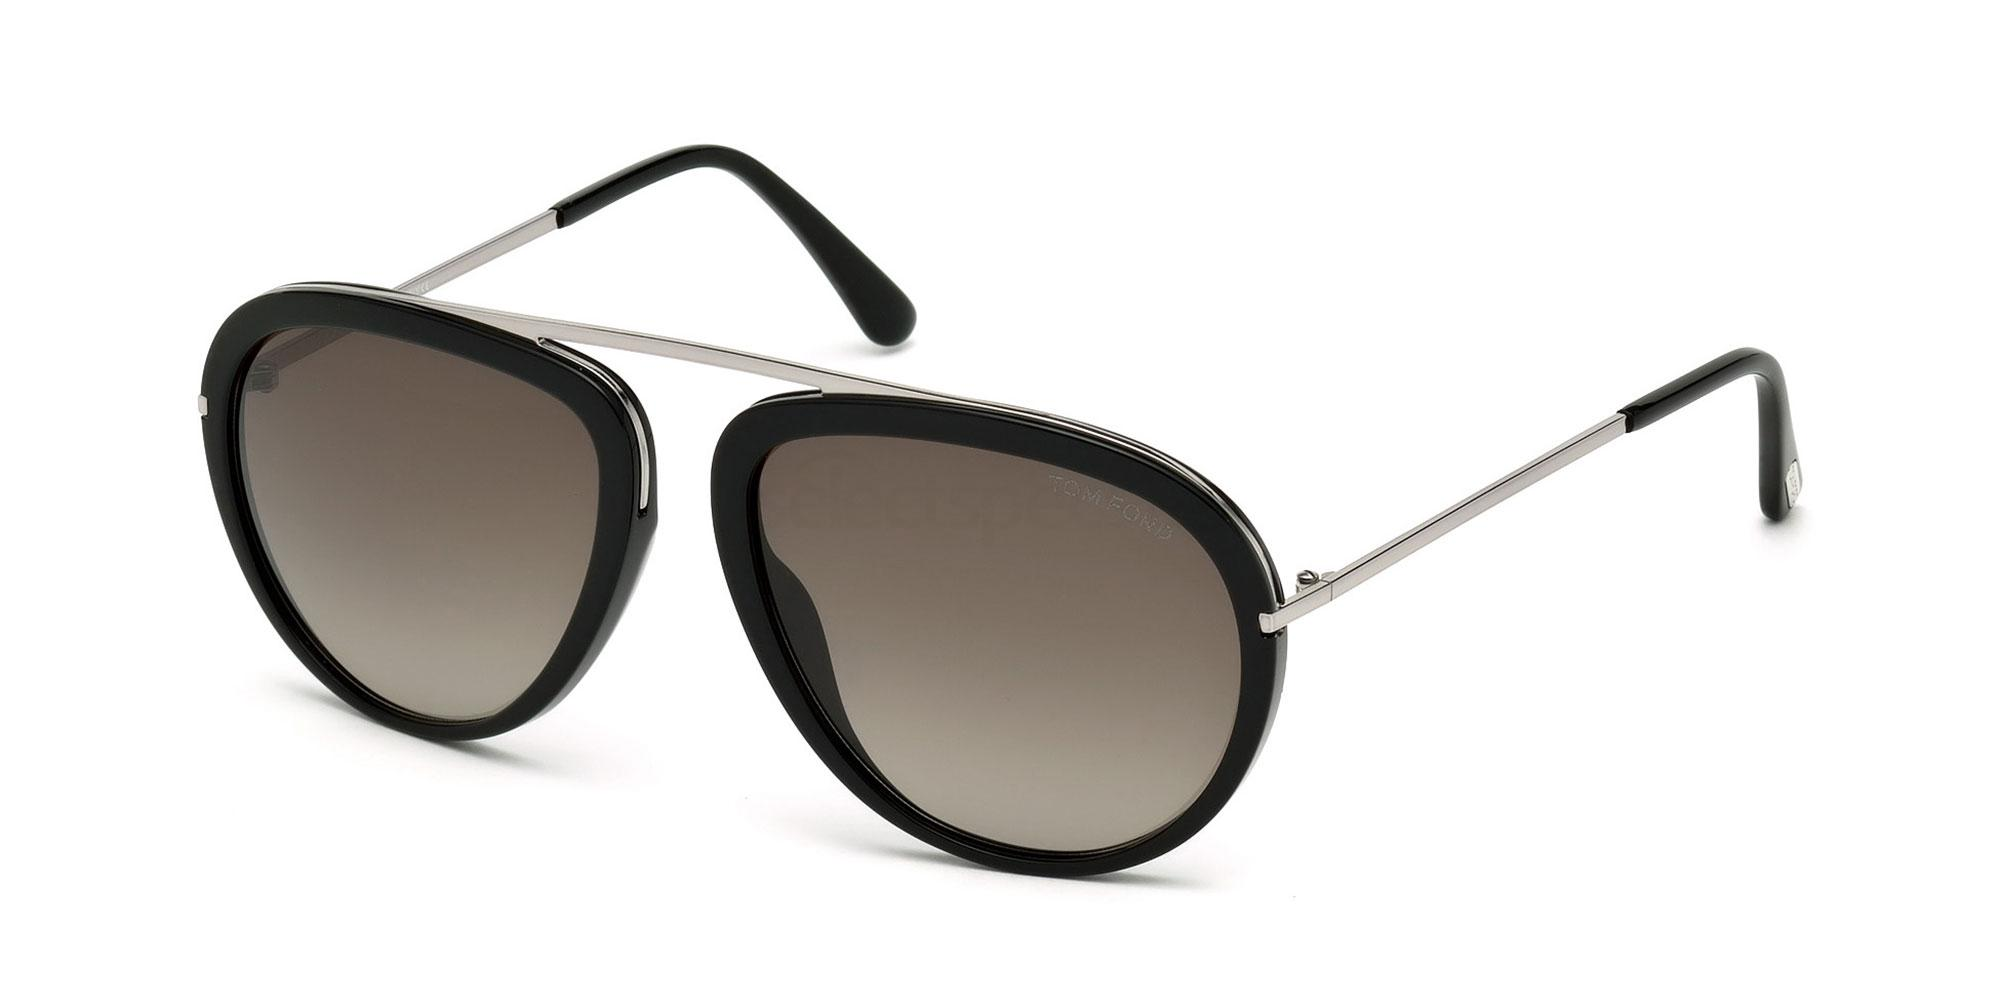 01K FT0452 Sunglasses, Tom Ford